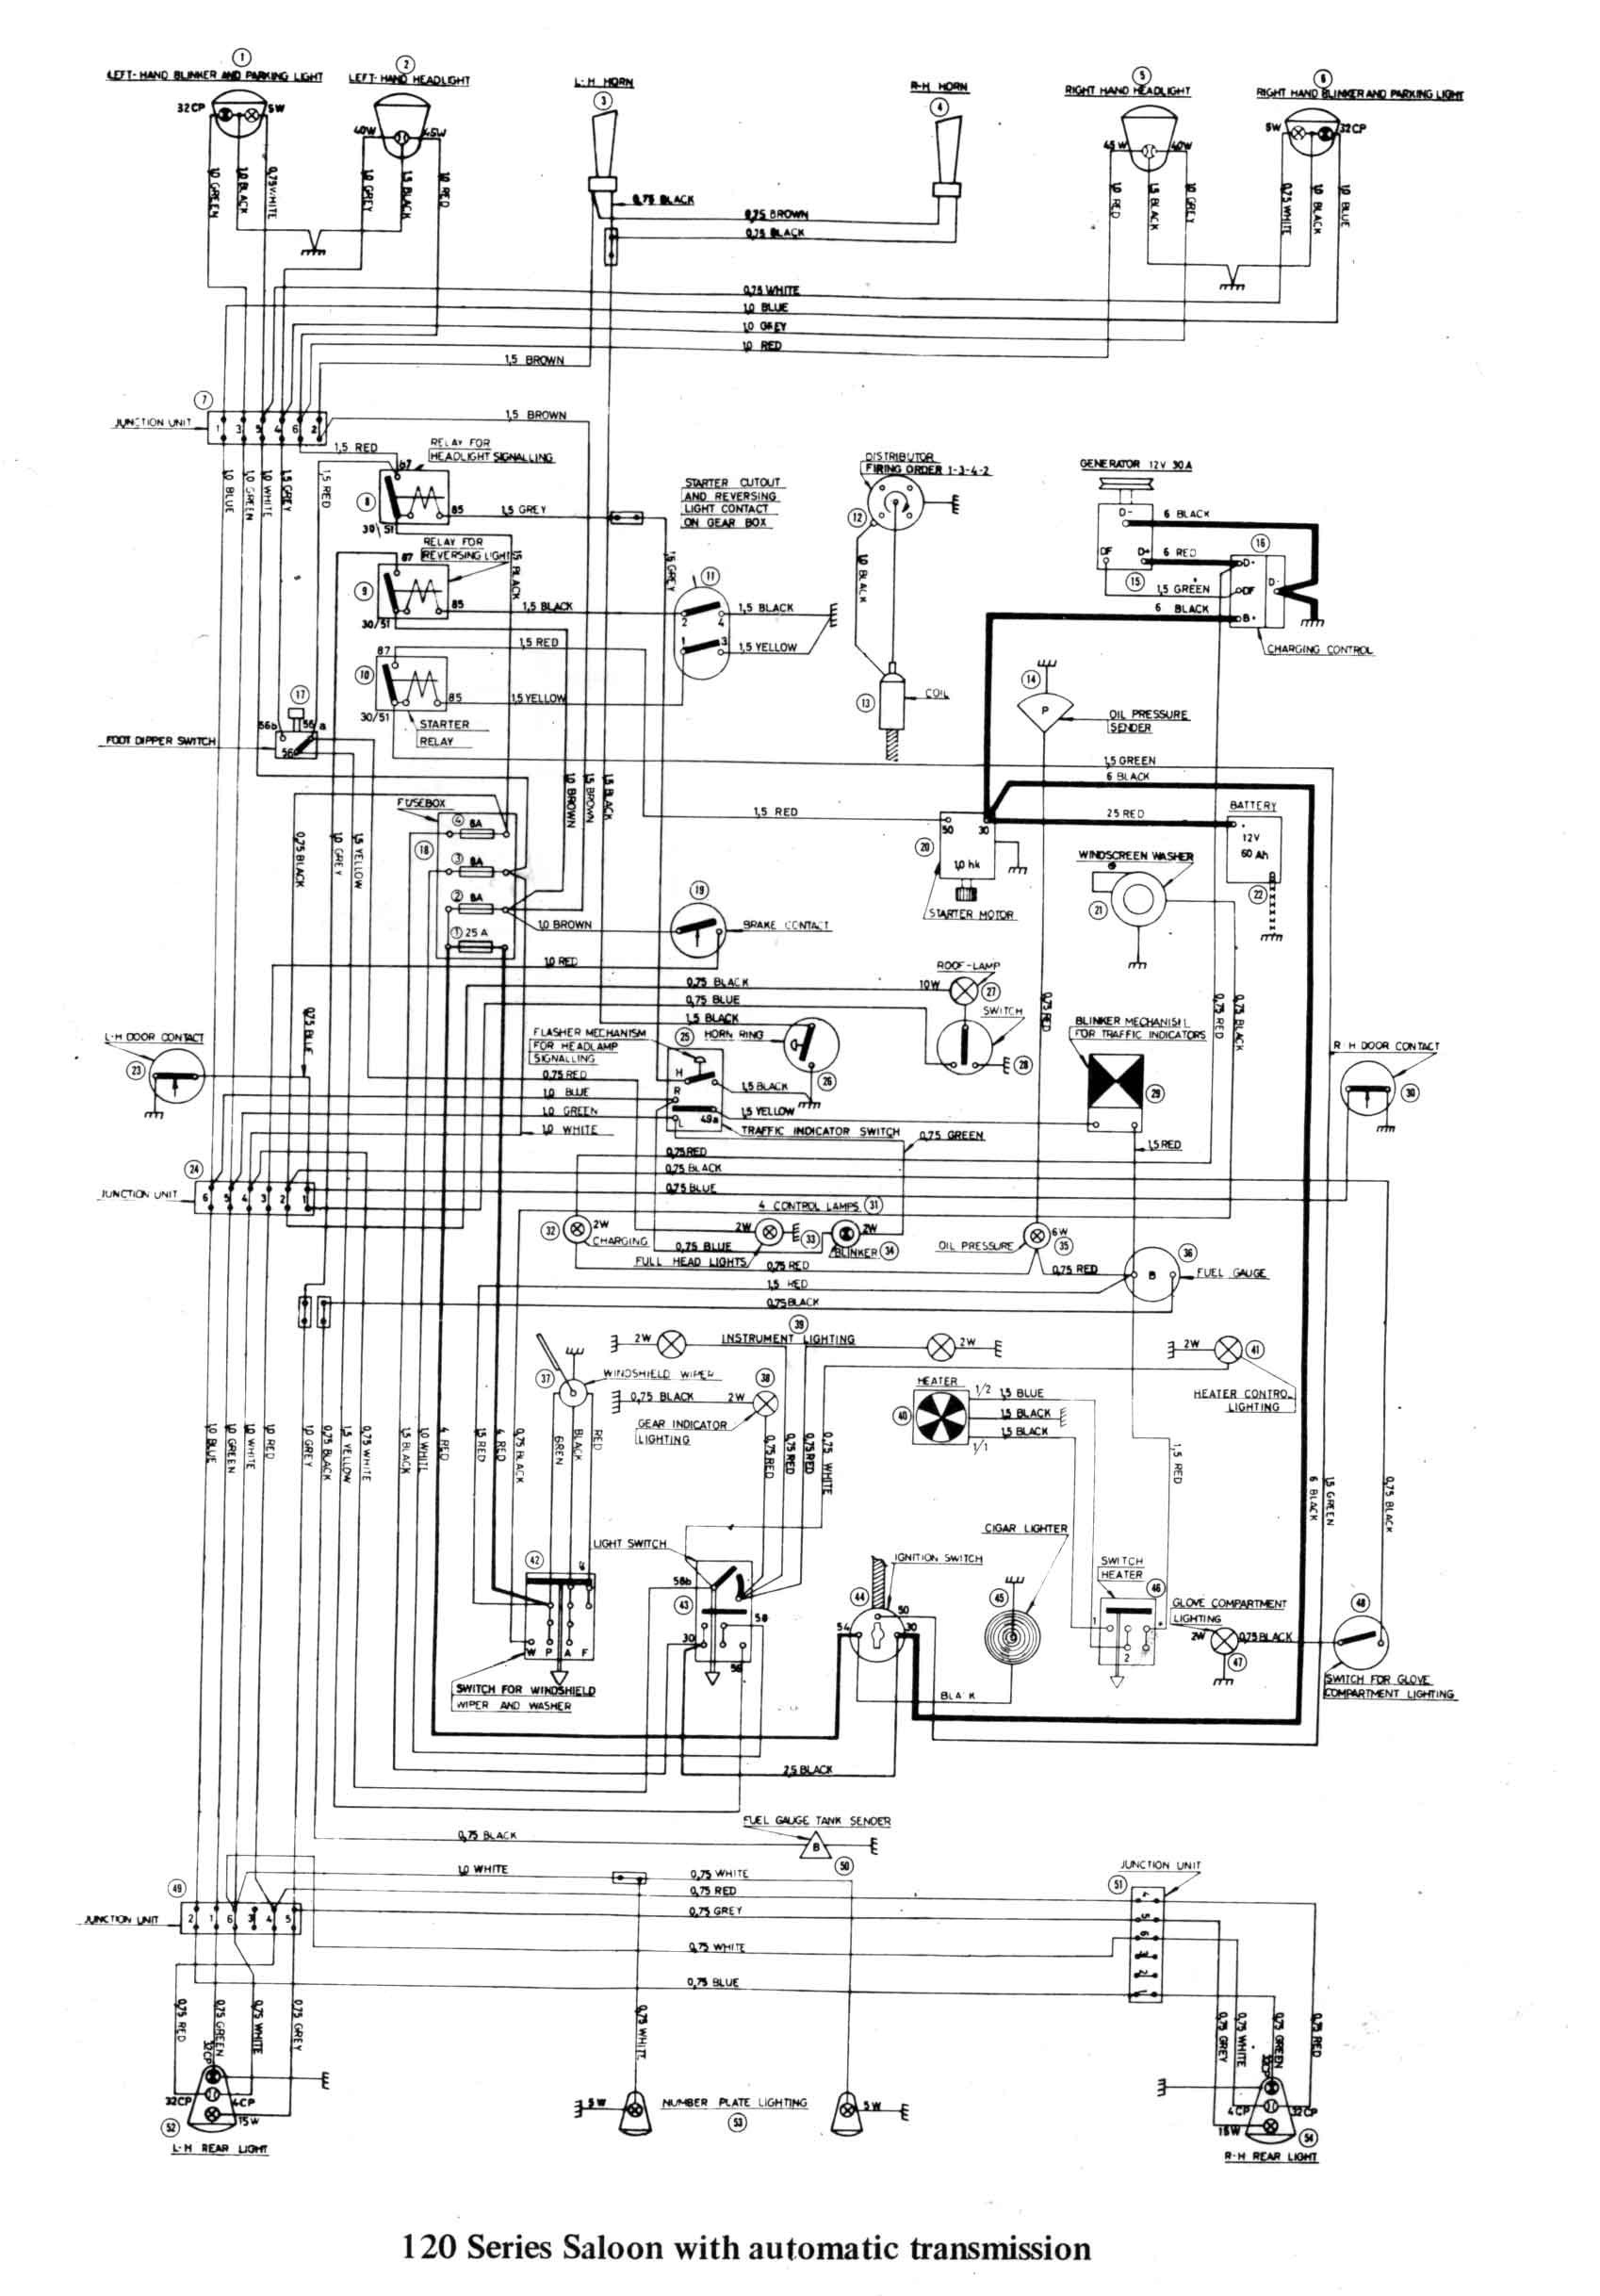 2005 Volvo S40 Engine Diagram Volvo V40 Engine Diagram Of 2005 Volvo S40 Engine Diagram